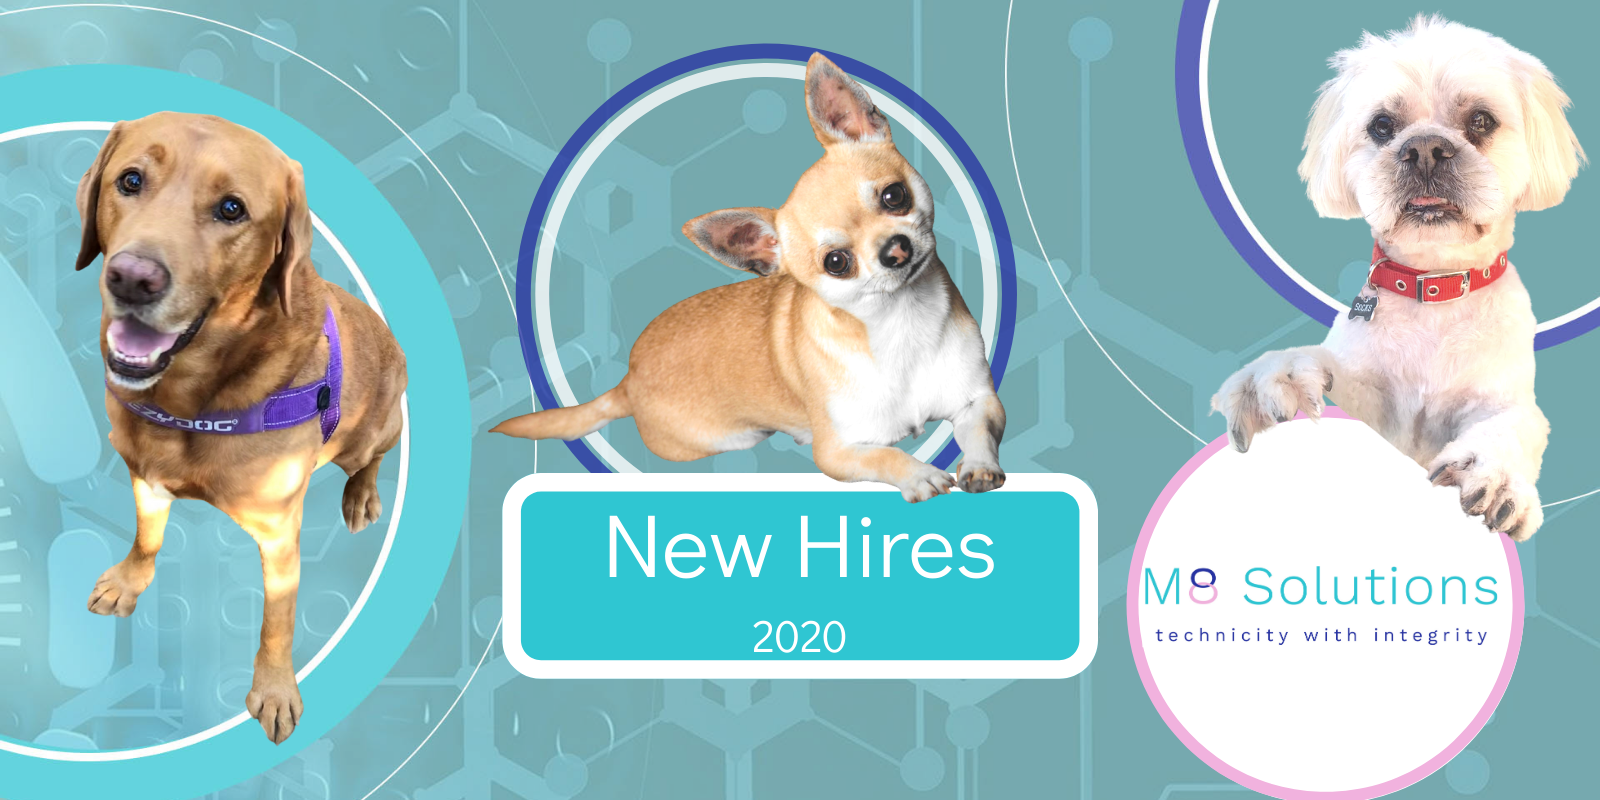 Alfie, Cisco and Socks, new hires for M8 Solutions